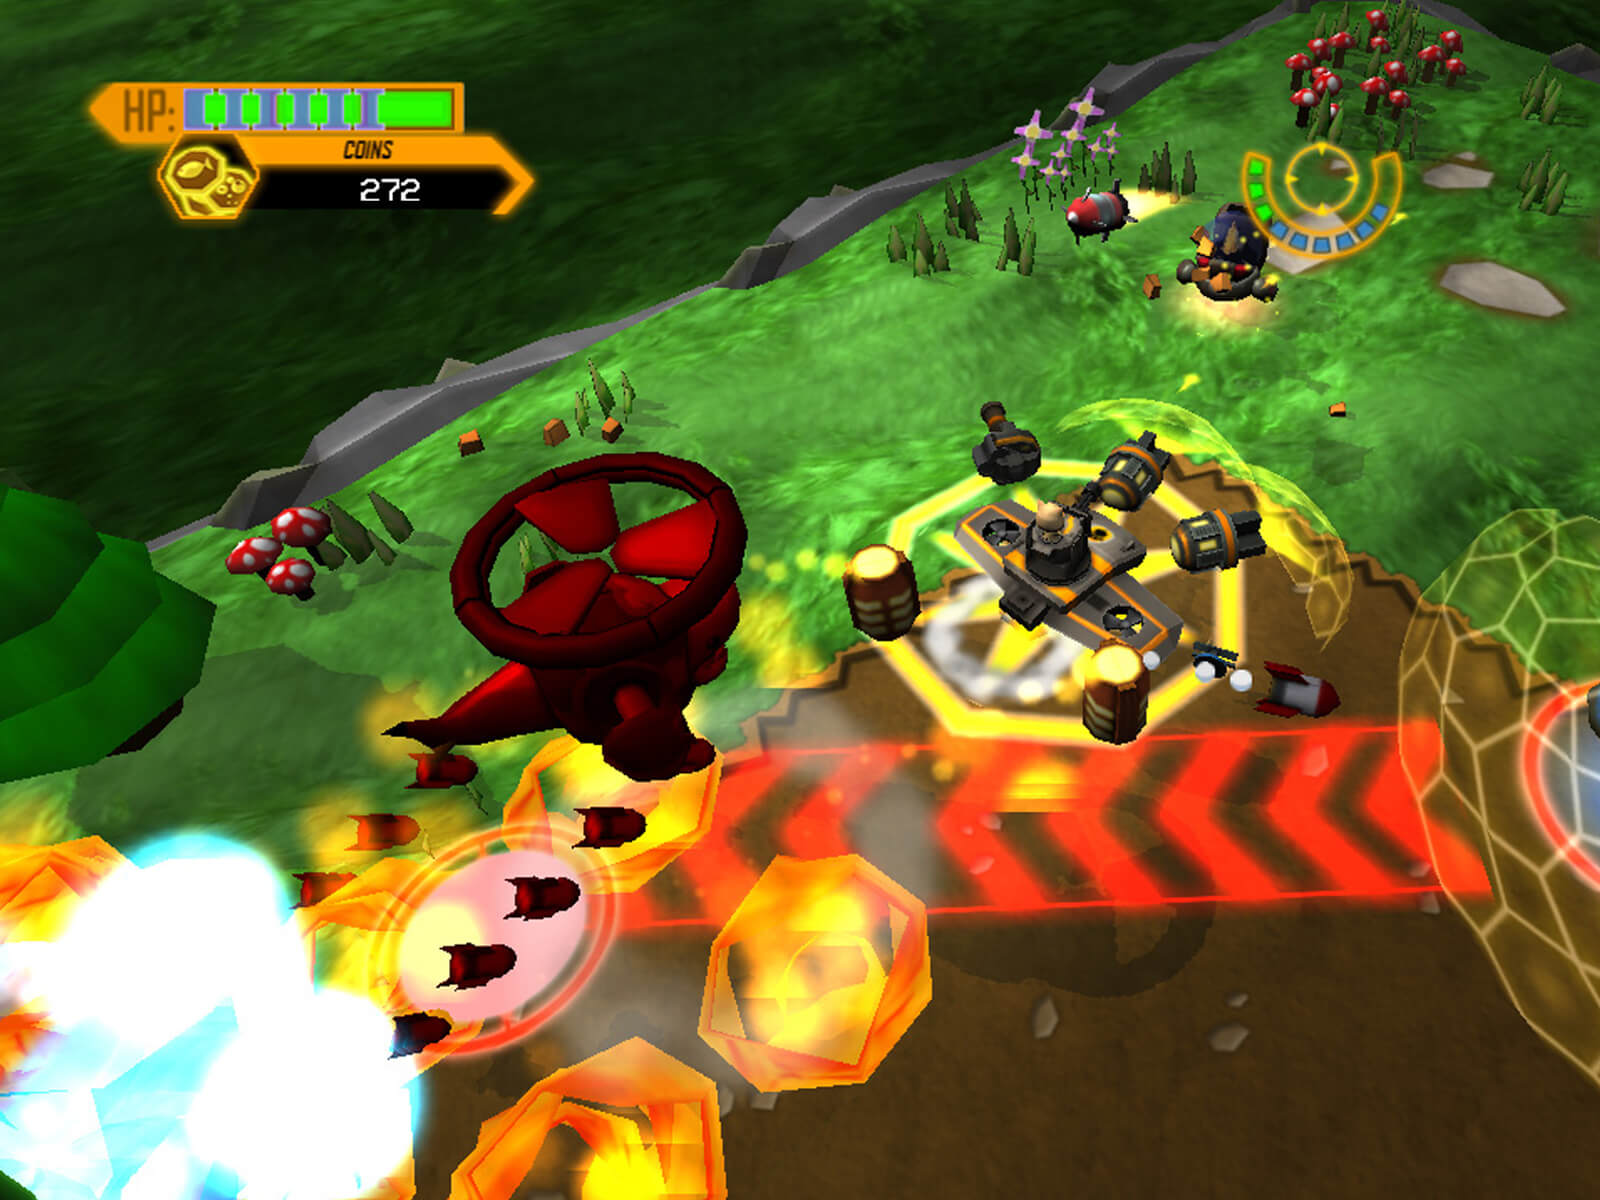 Screenshot of player's cat-piloted hover tank surrounded by enemies and dodging explosions and bombs